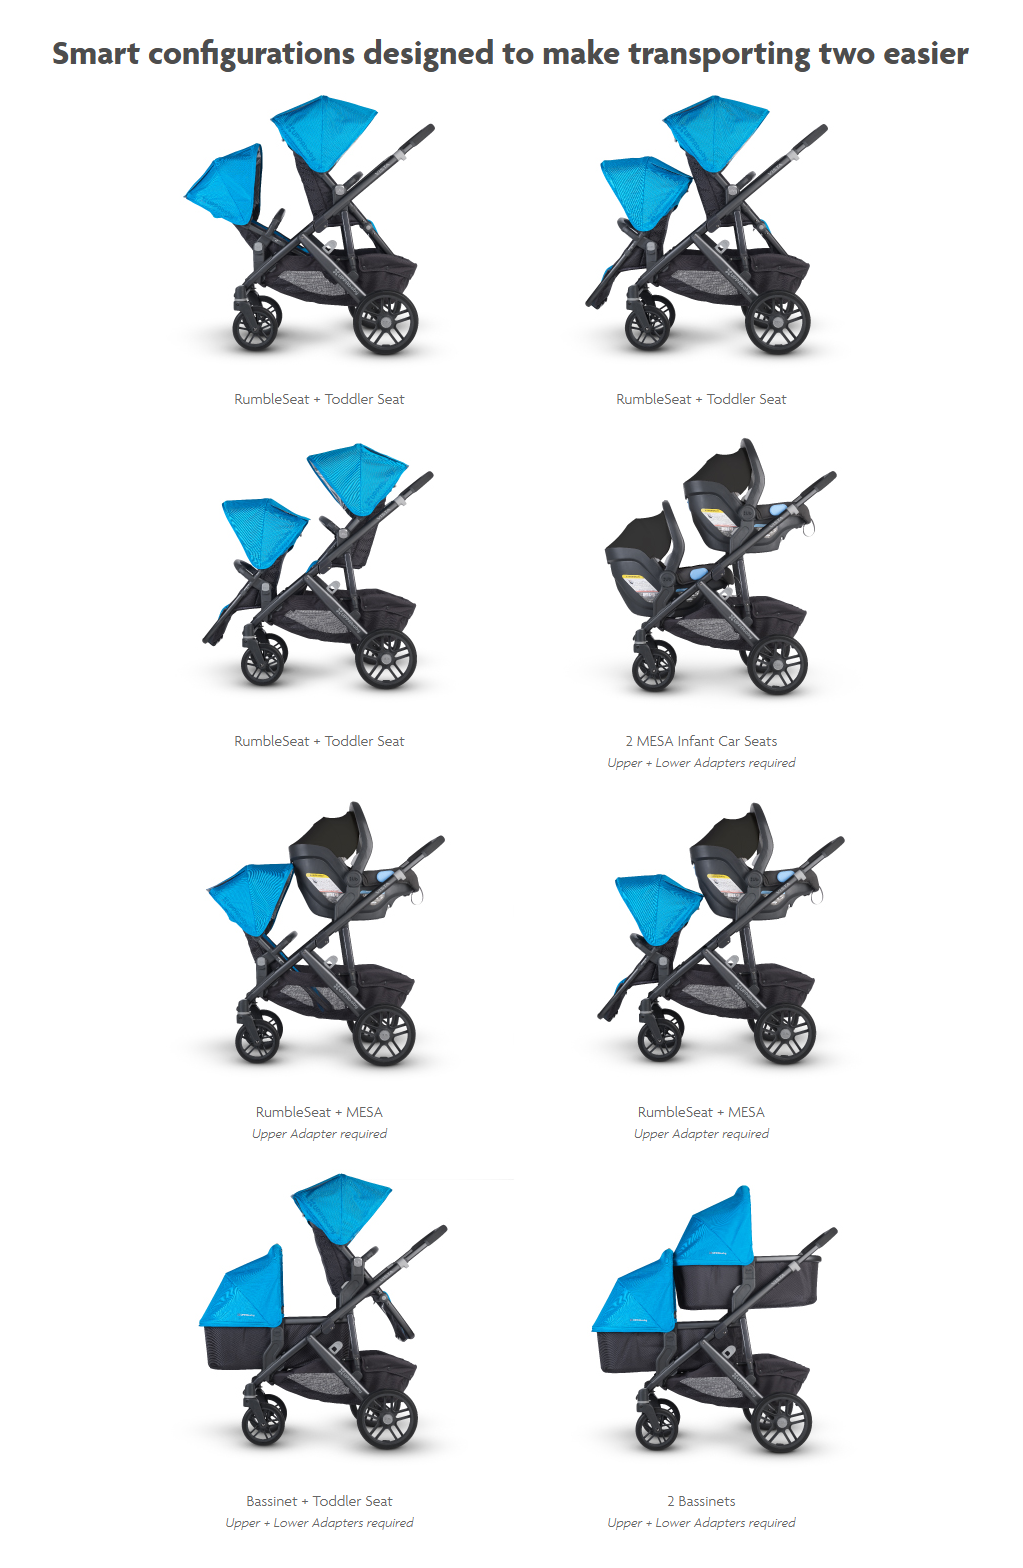 Uppababy 2018 2019 Vista Stroller Gregory Blue Melange Silver Https Sepyimgcom Ty Cdn Gasscootertassemblyjpg Configures Smartly To Adapt Growing Families